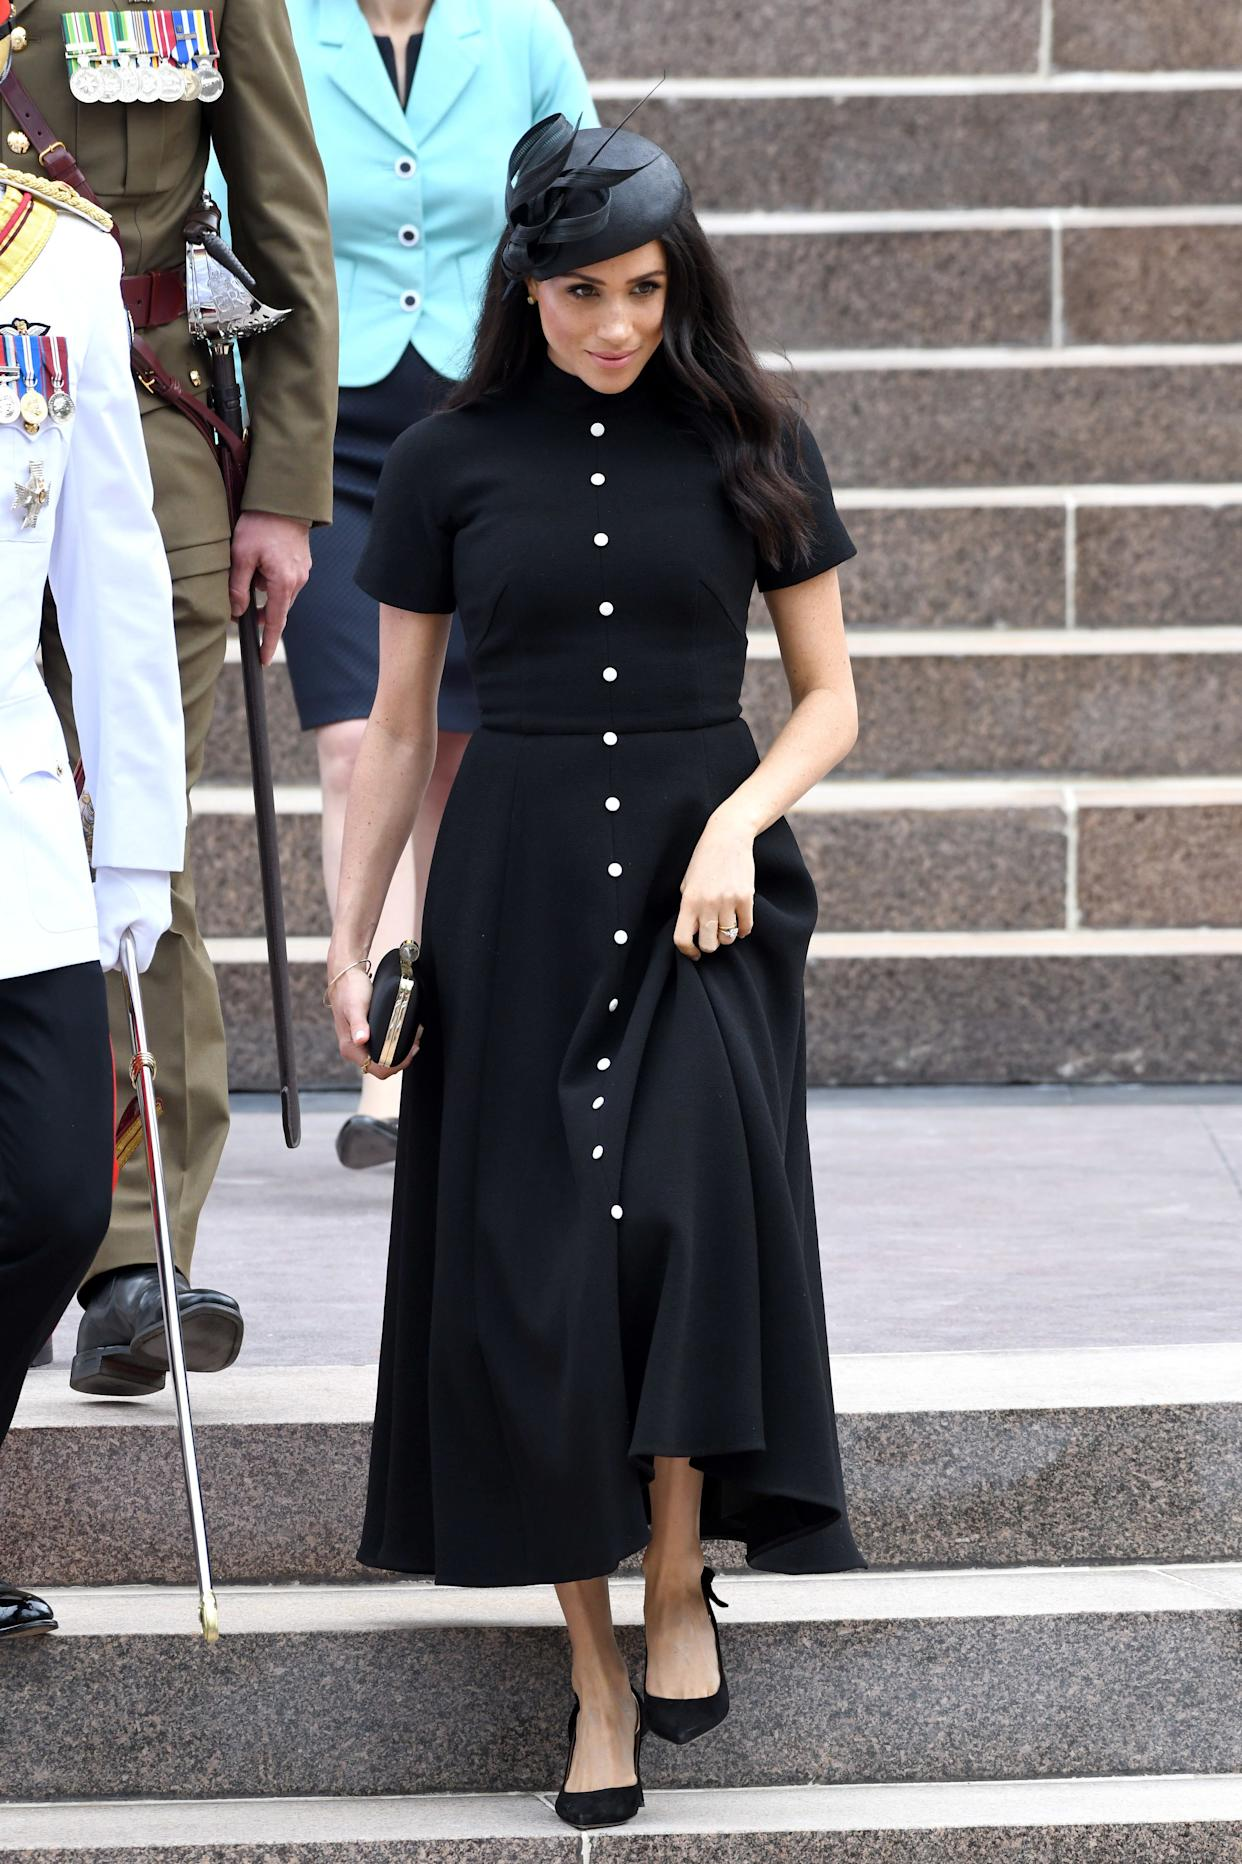 The duchess wears a black dress by Emilia Wickstead at the Anzac Memorial at Hyde Park in Sydney on Oct. 20, day five of the royal tour.